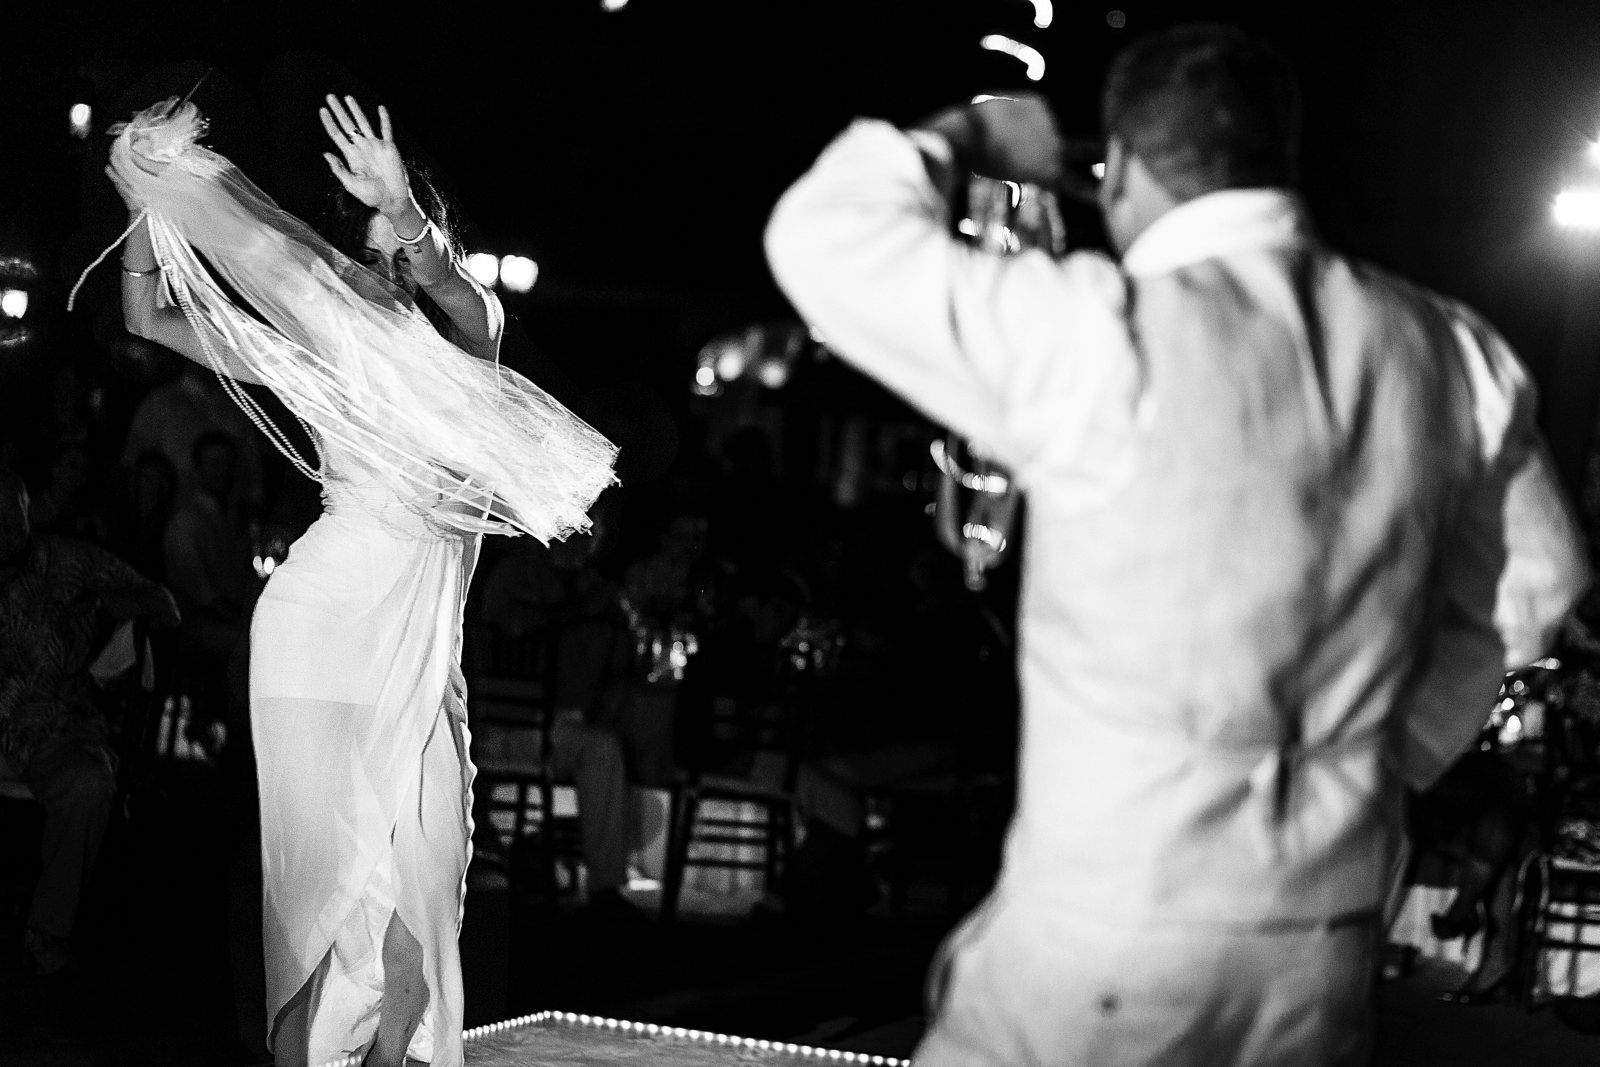 Wedding female guest dancing during traditional Persian dance for the groom to recover the wedding cake knife